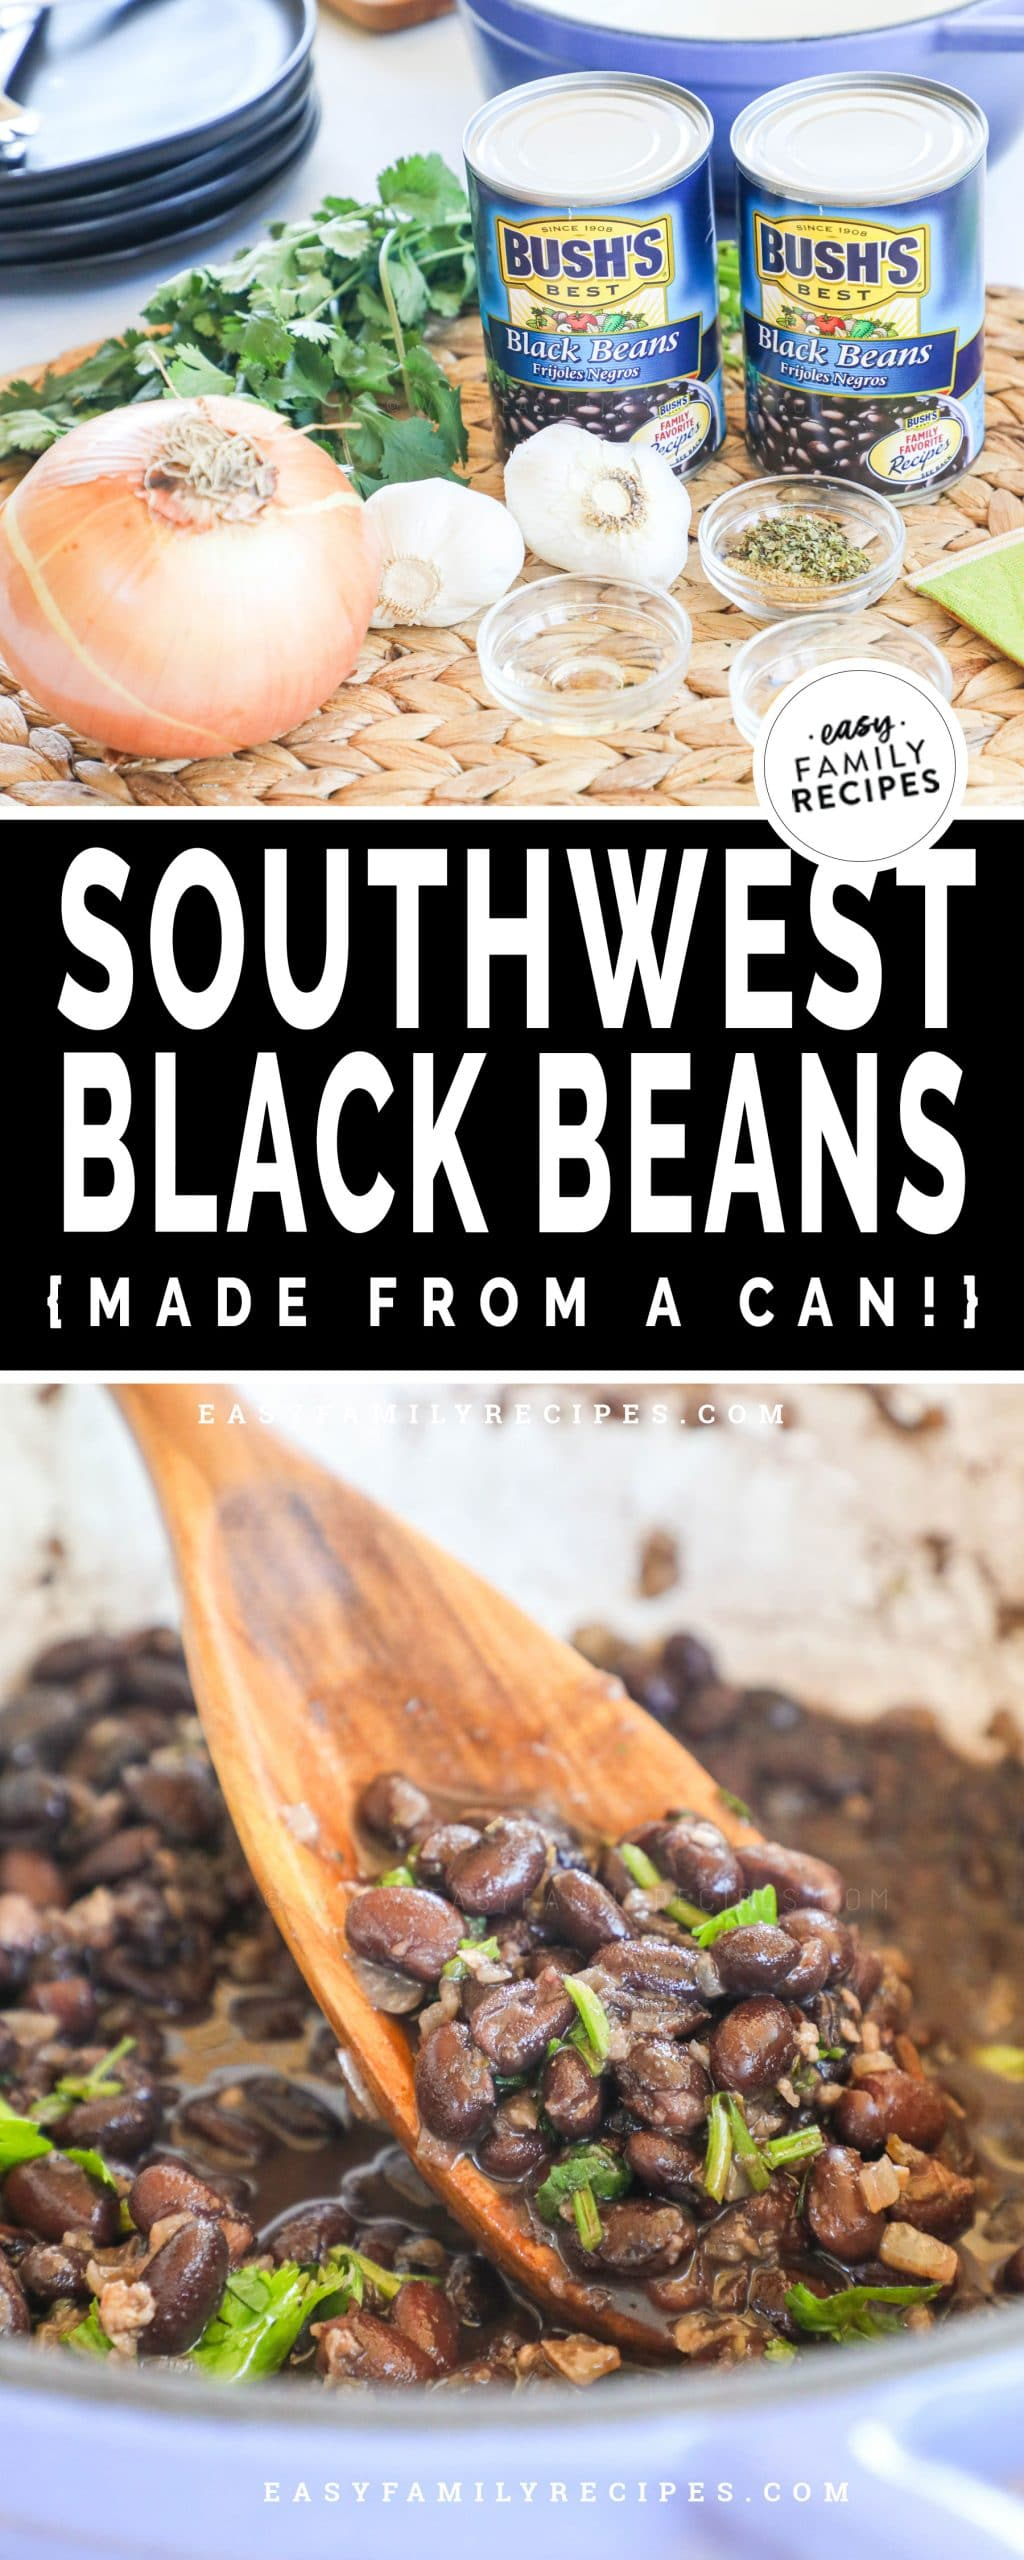 top: ingredients for making canned black beans bottom: canned black beans cooked in pot